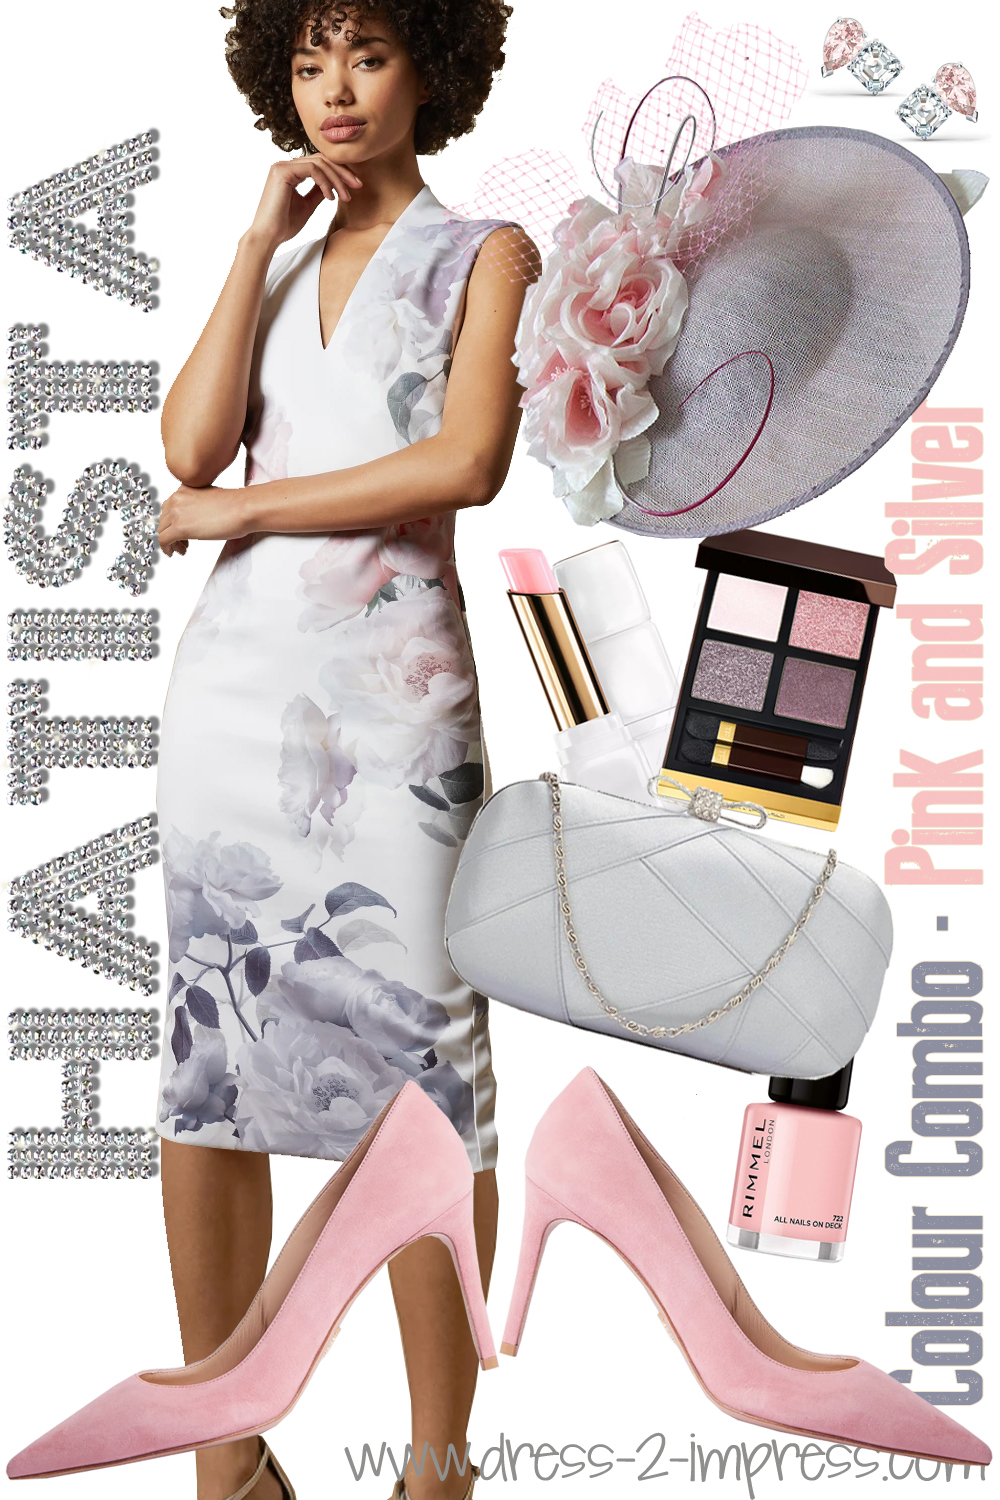 Pink and Silver outfits ideas. Outfits with Baby Pink. What to wear to the Kentucky Derby. Outfits for Royal Ascot. Pastel outfits for a Summer Wedding. Pink Mother of the Bride outfits. Pink and Silver Mother of the Bride Hat. What to wear for a Day at the Races